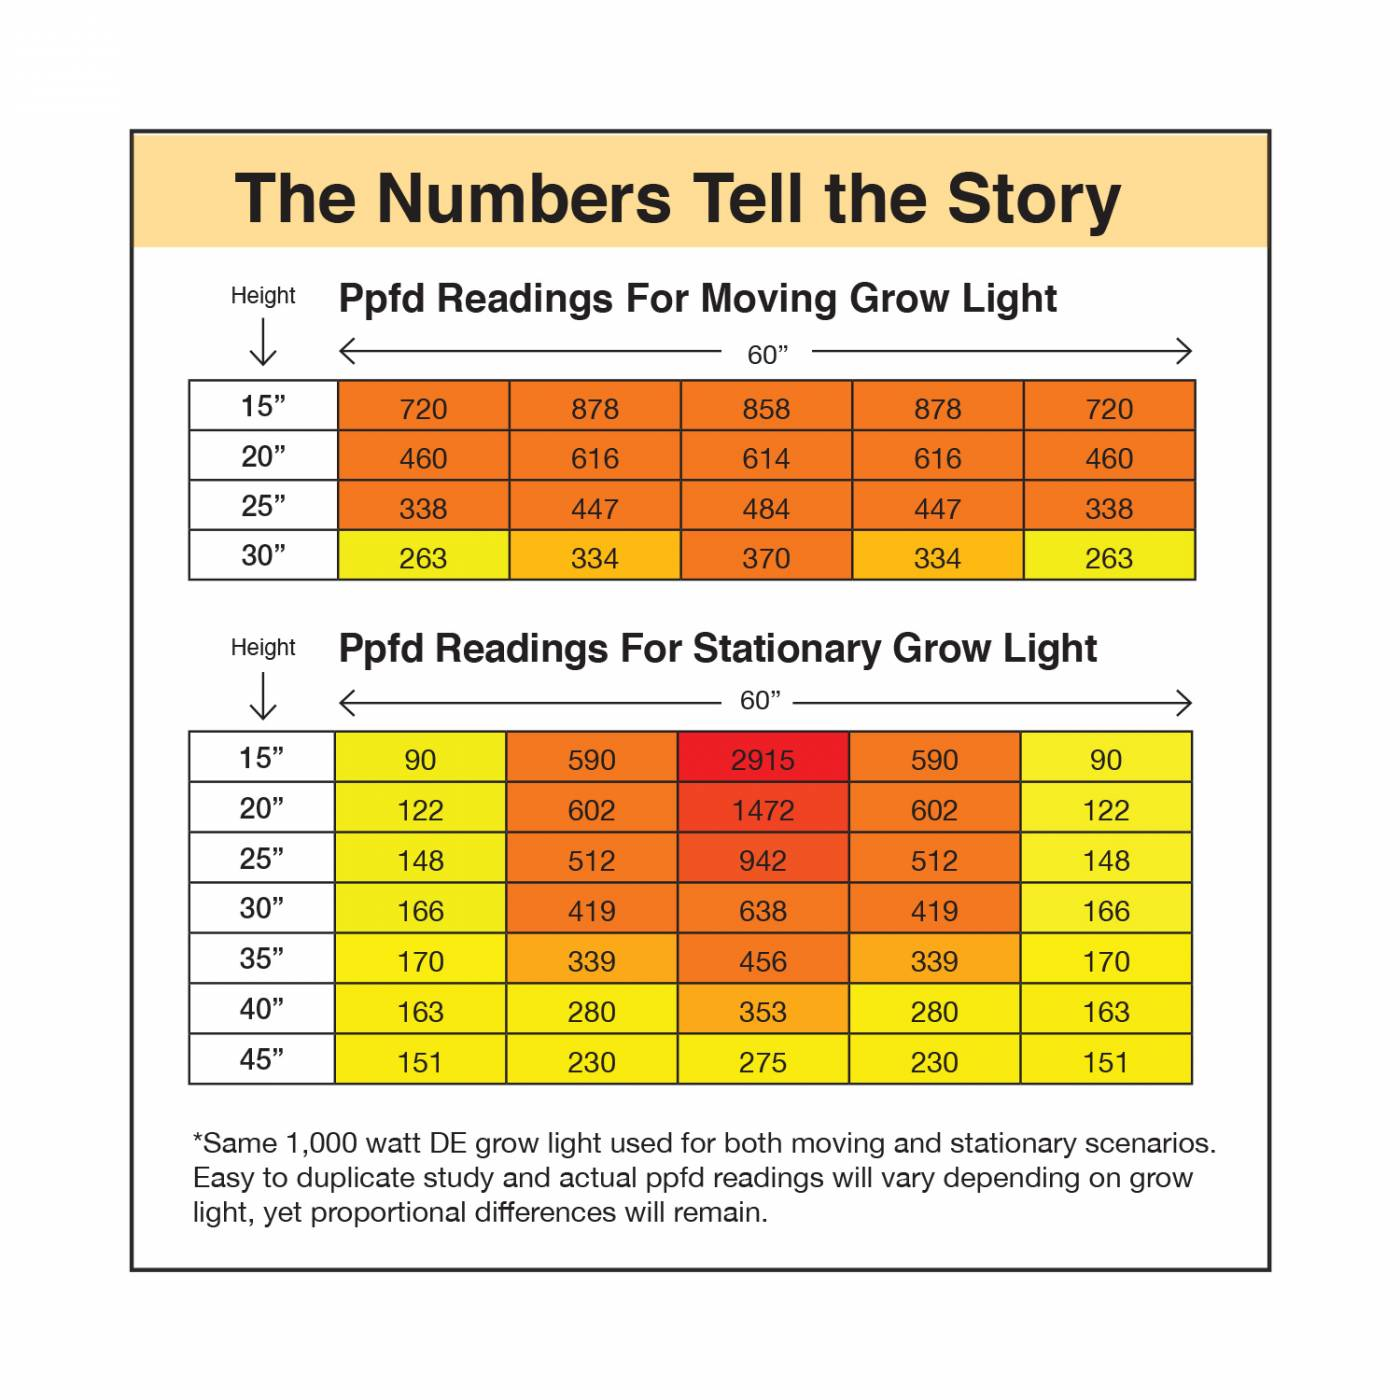 Ppfd readings for moving grow lights vs stationary grow lights